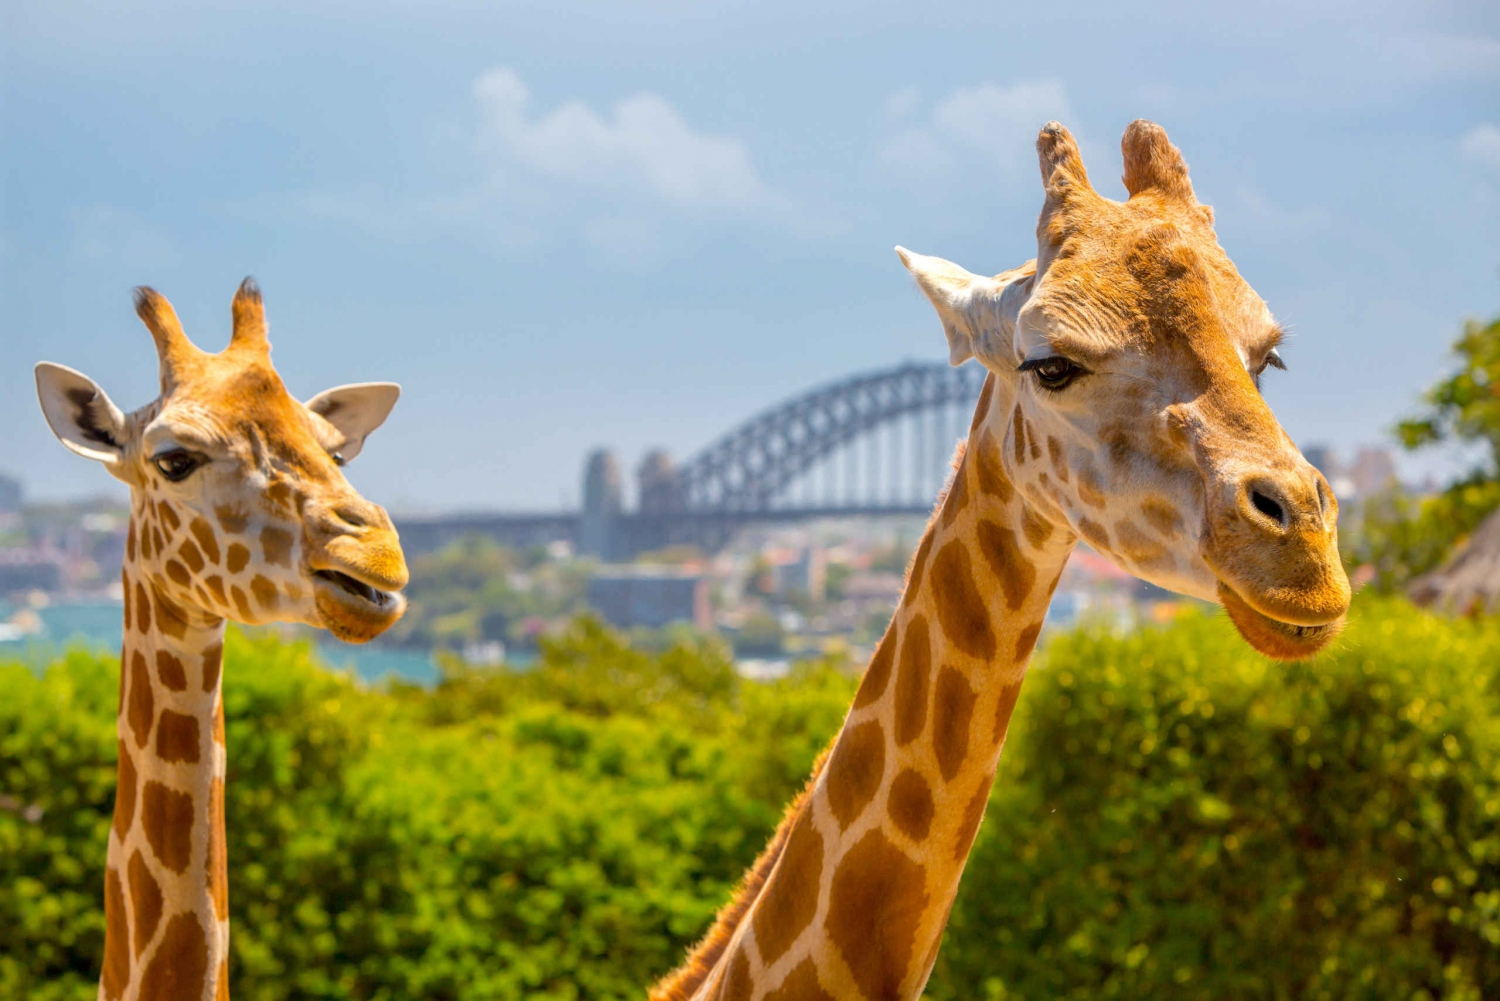 Exclusive 90-Minute VIP Tour of Taronga Zoo